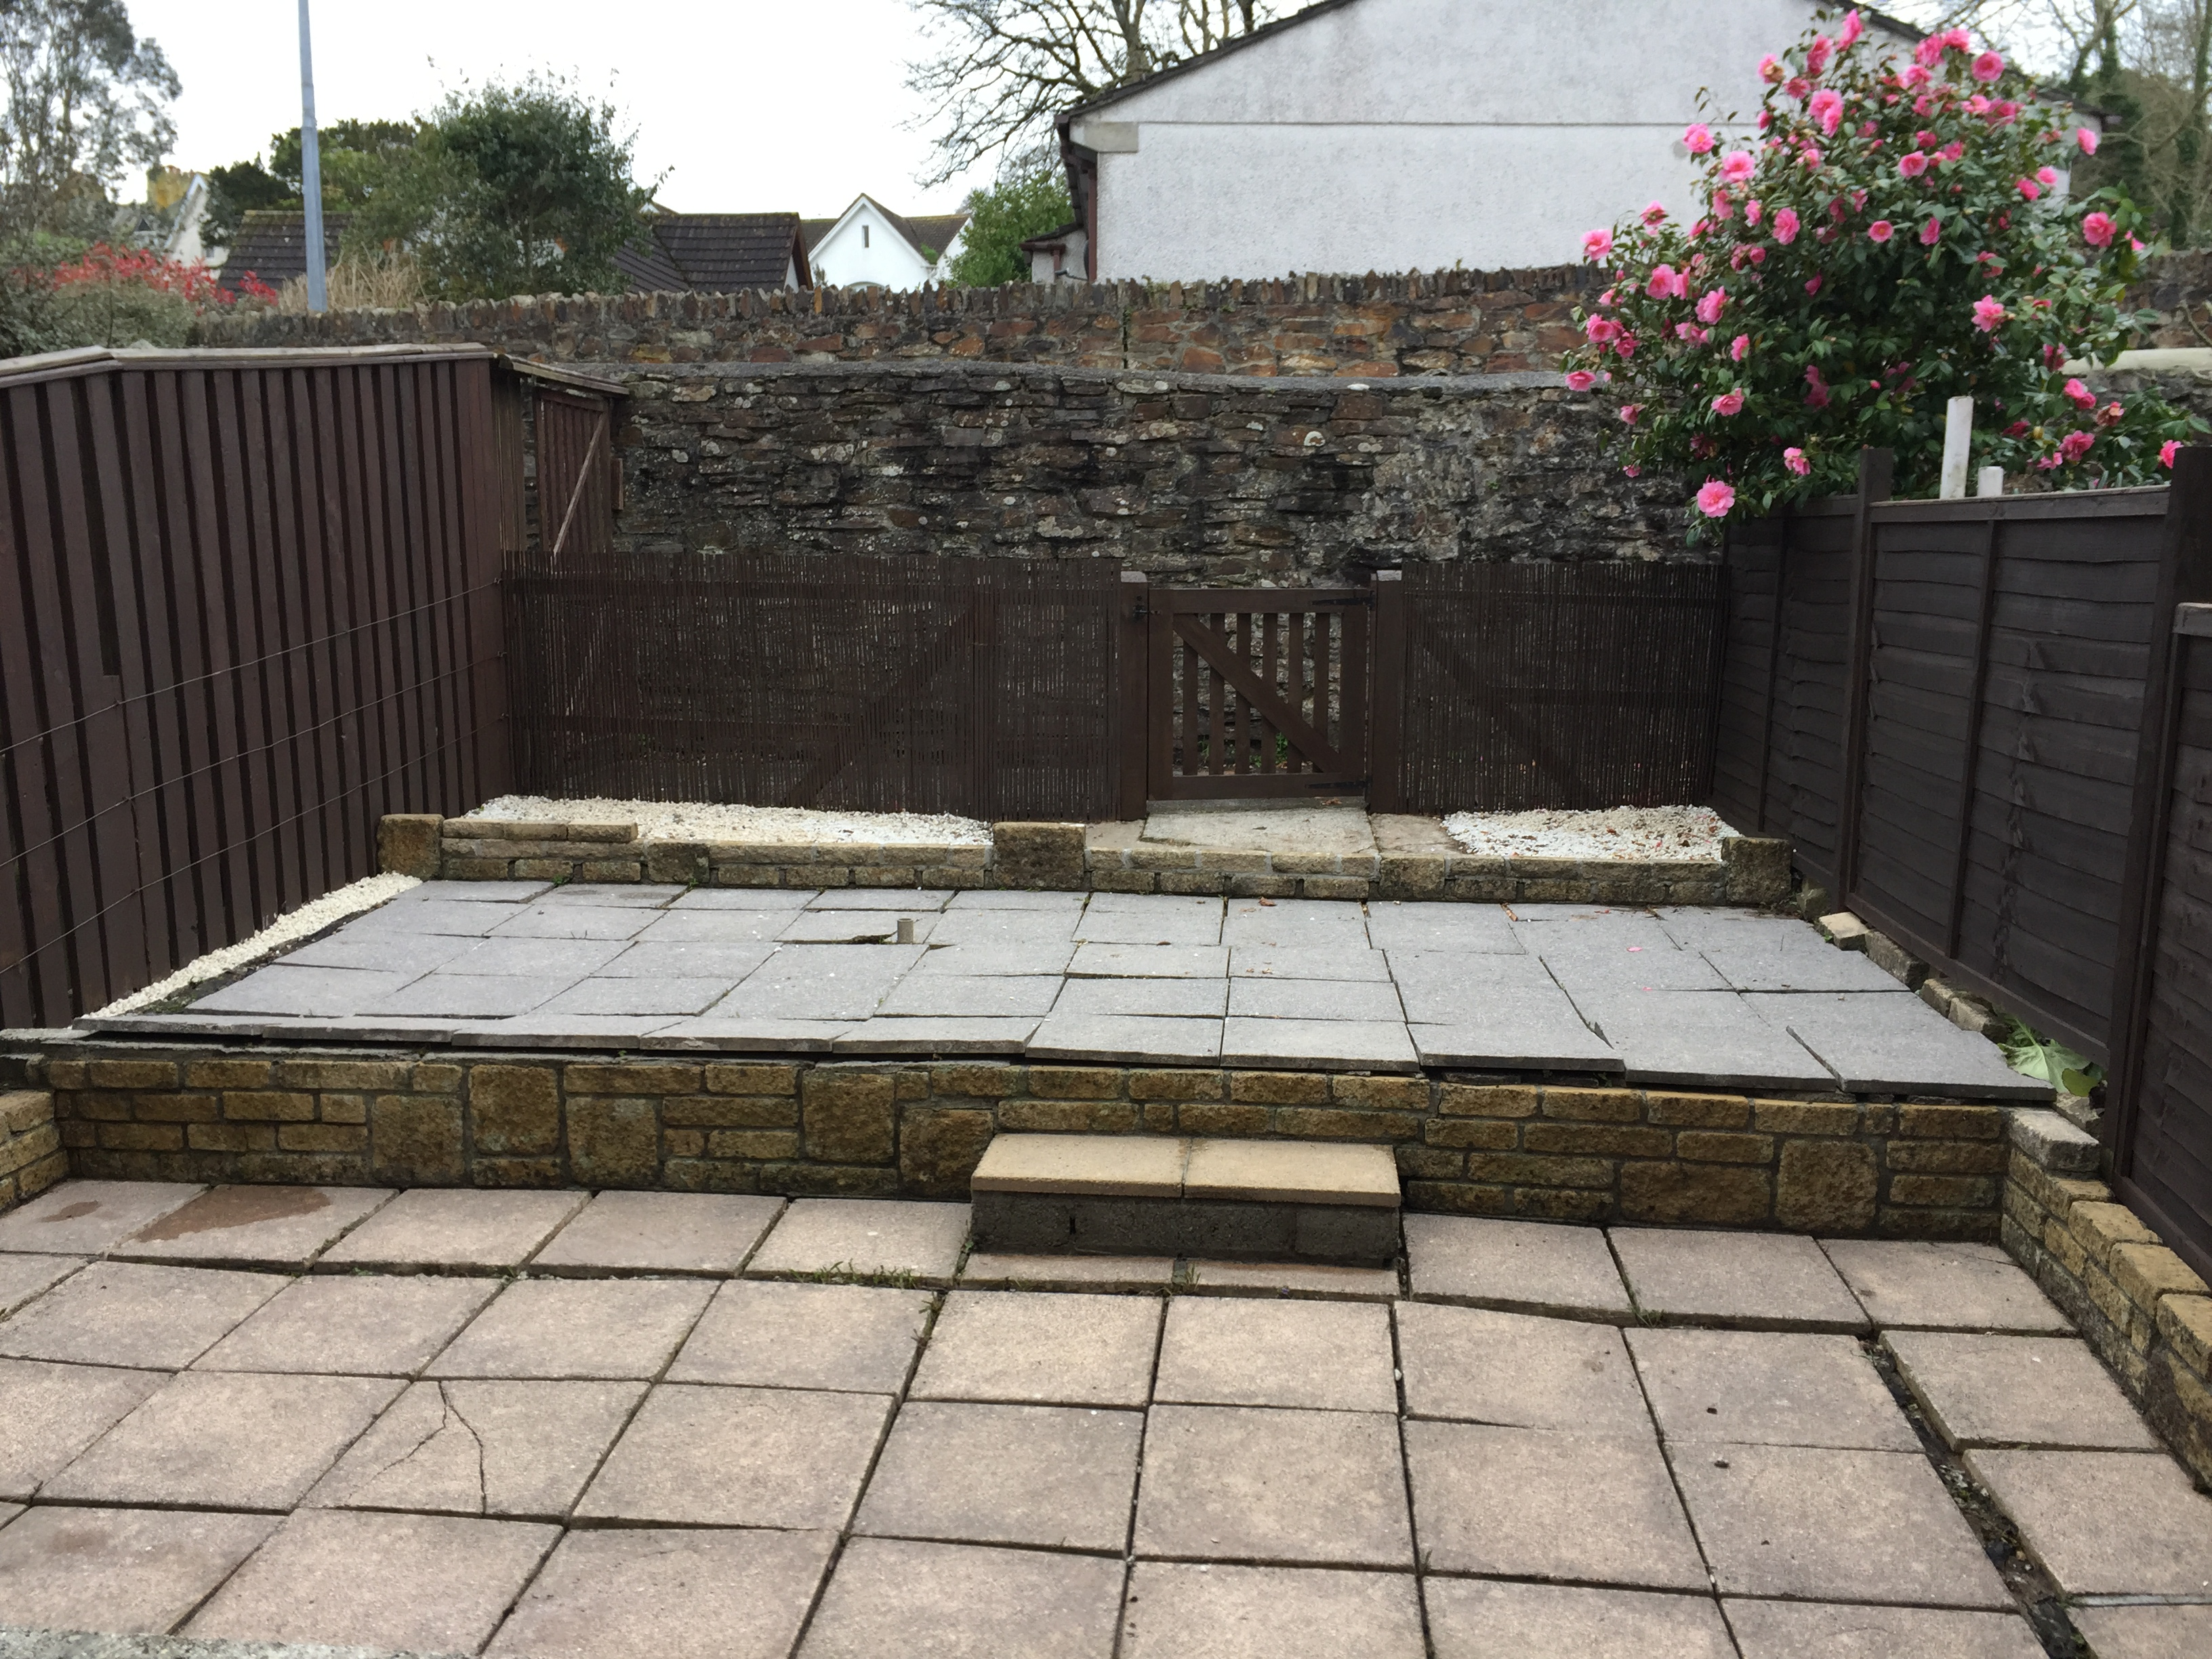 De-weeding & powerwash